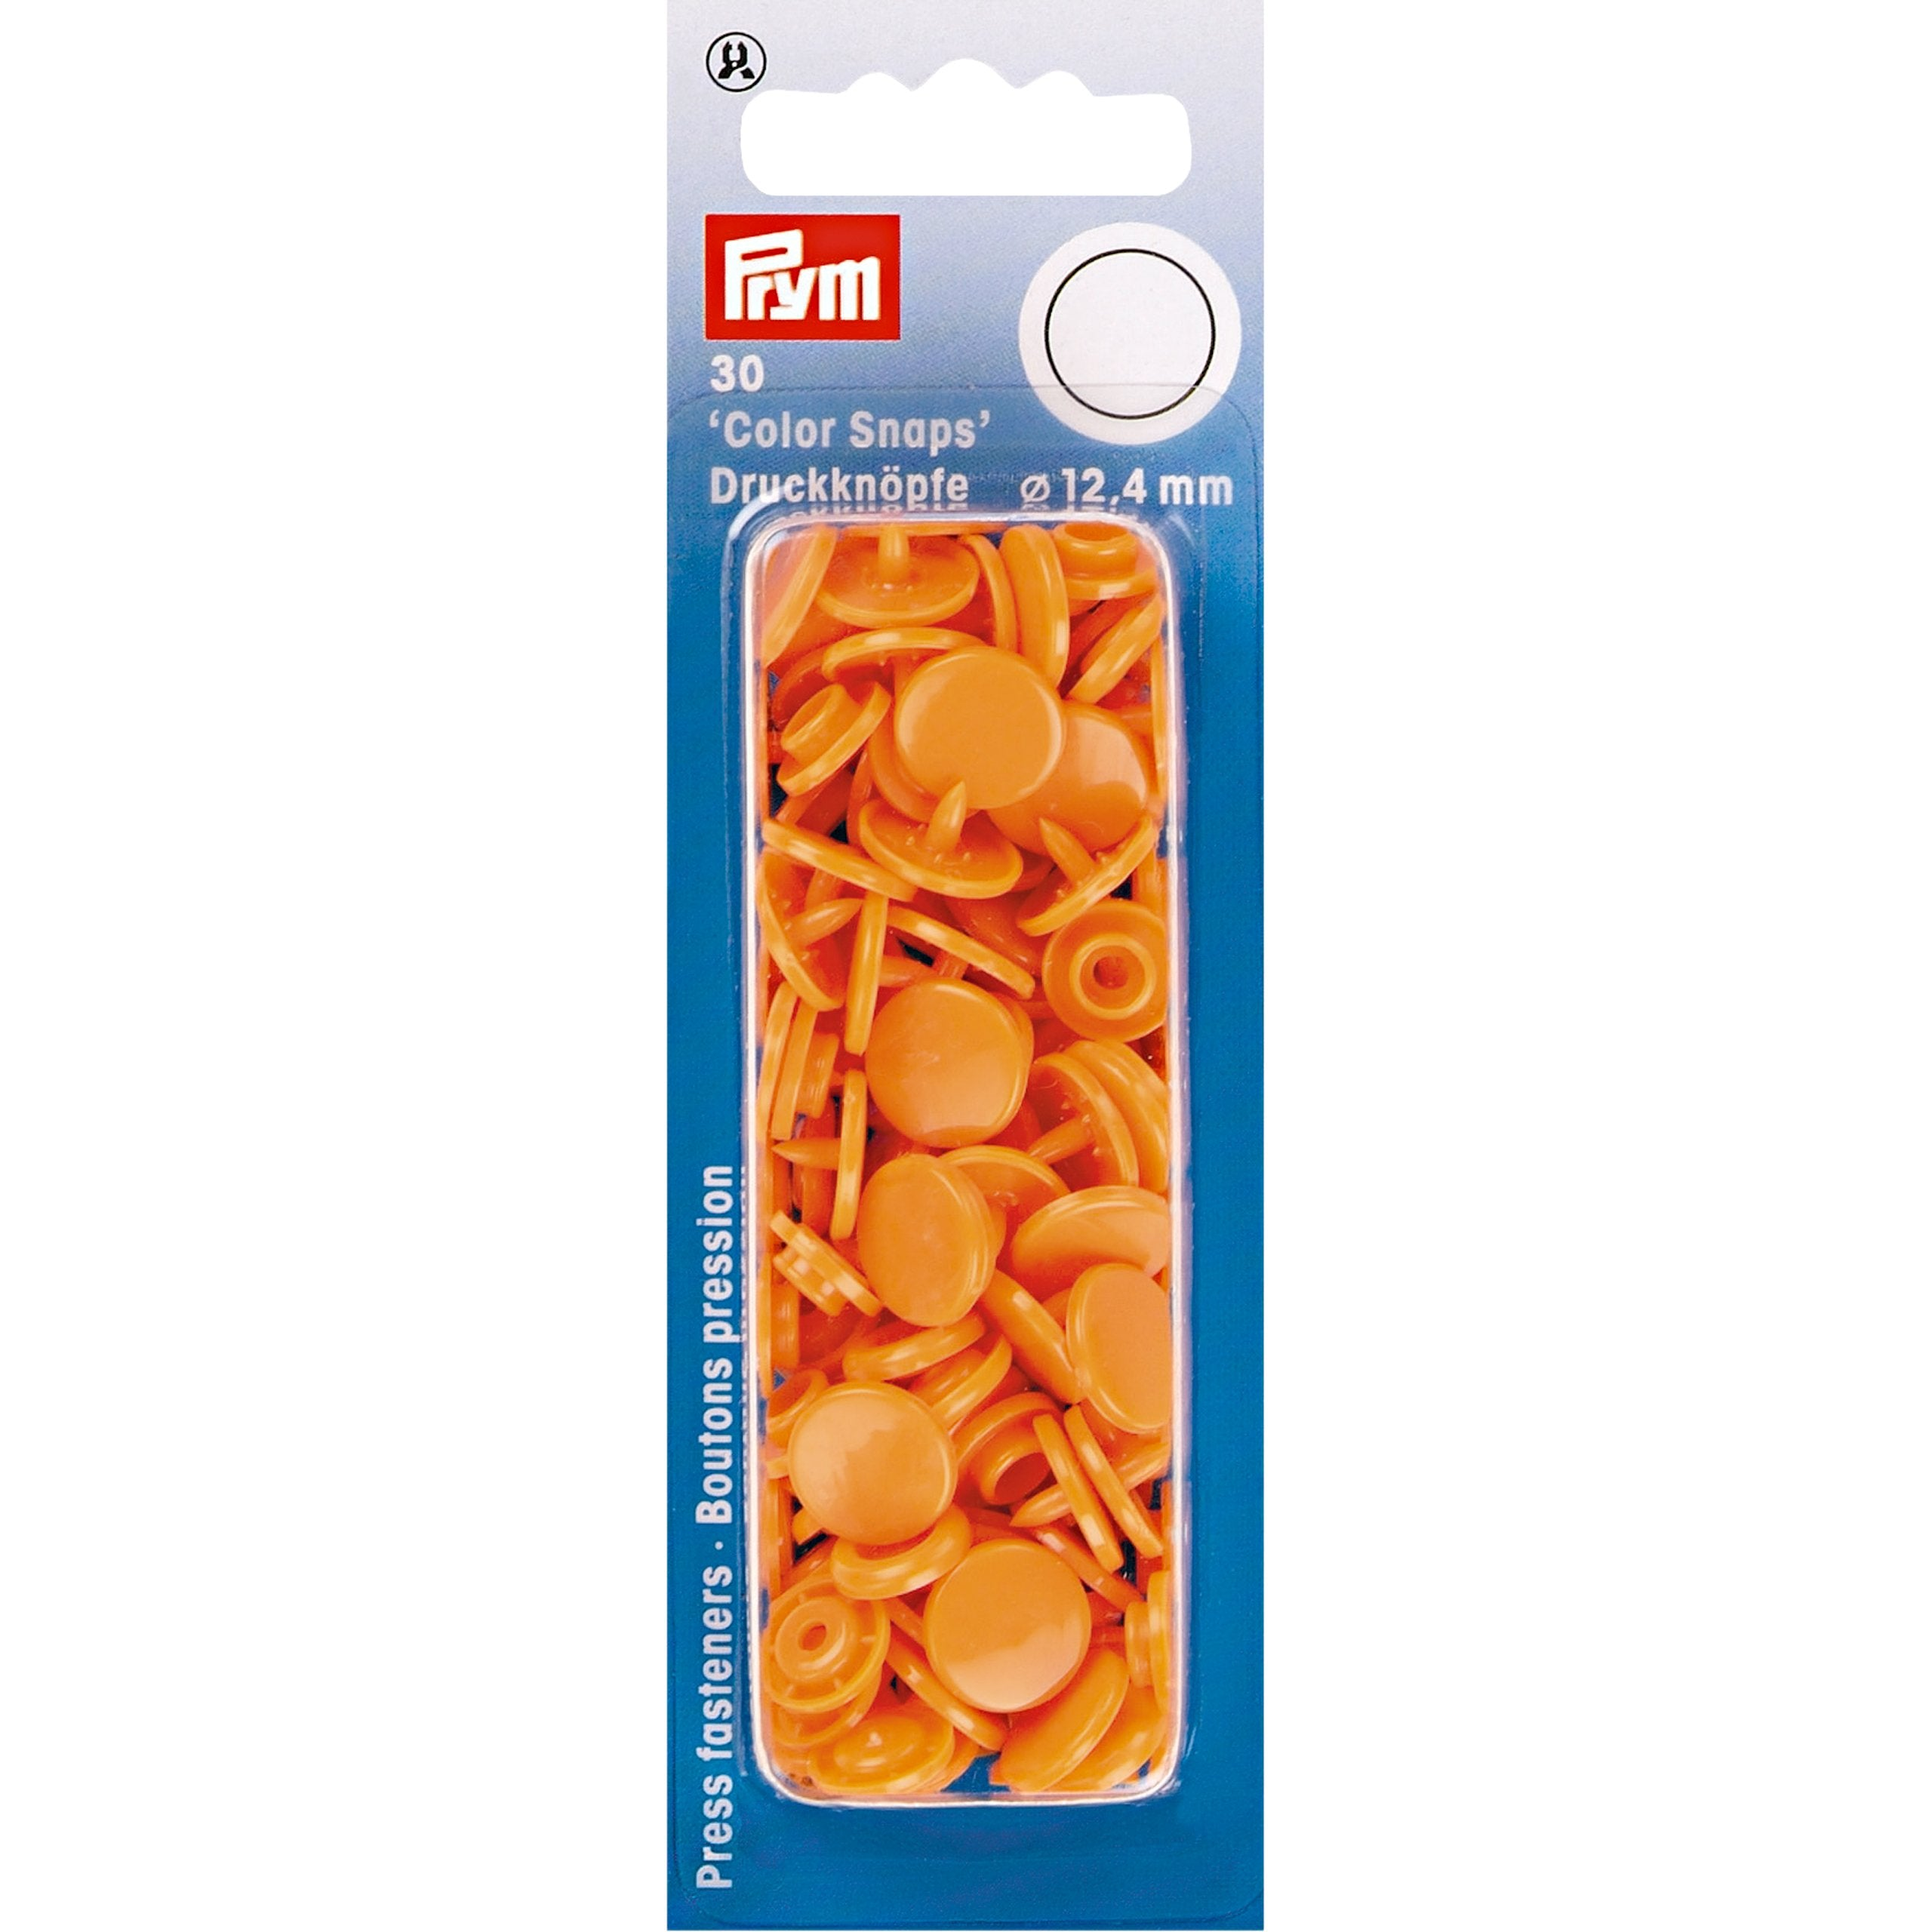 Prym Colour Snaps - Orange - Packs of 30